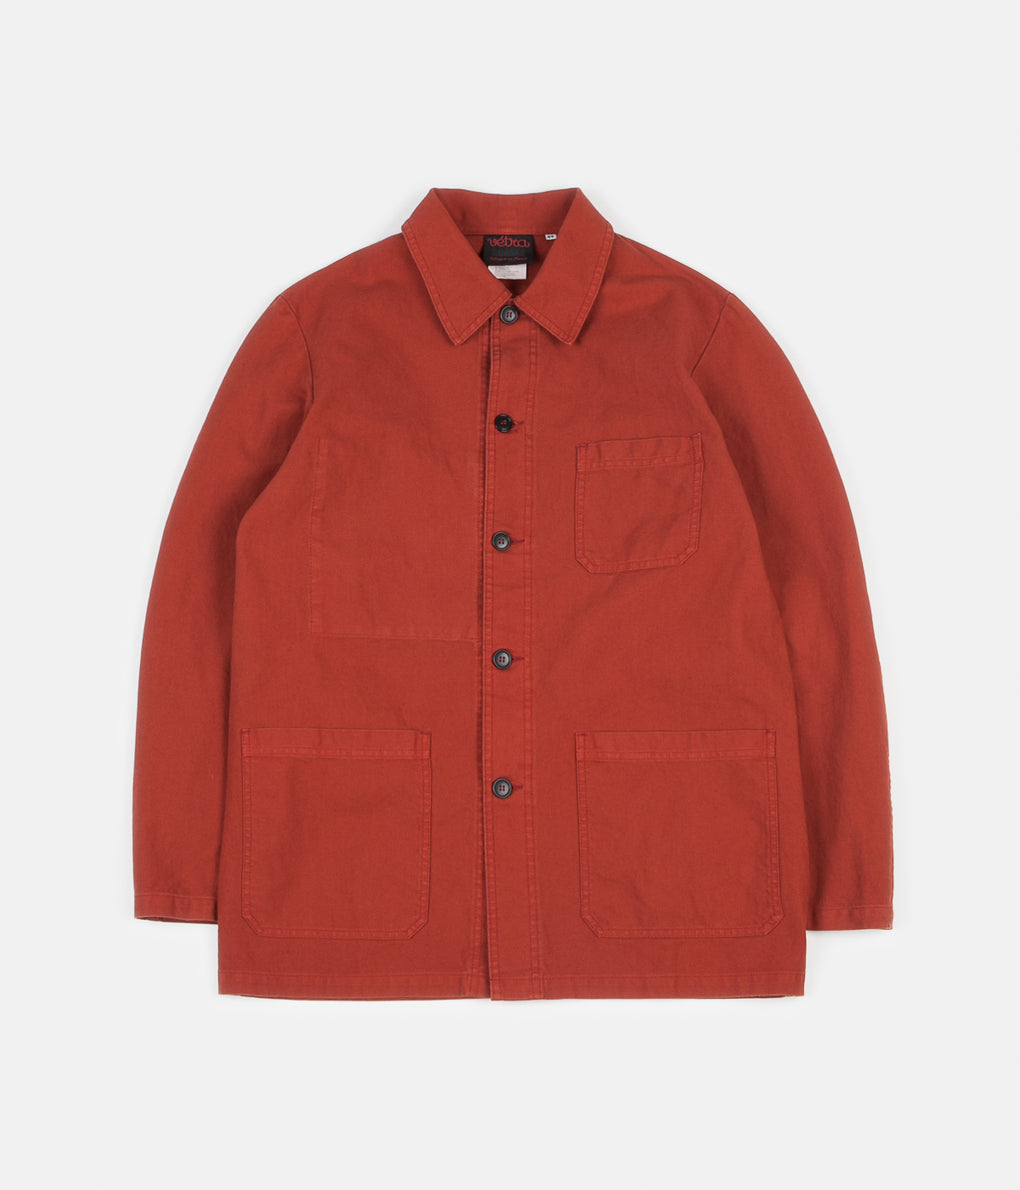 Vetra No.4 Workwear Jacket - Quince